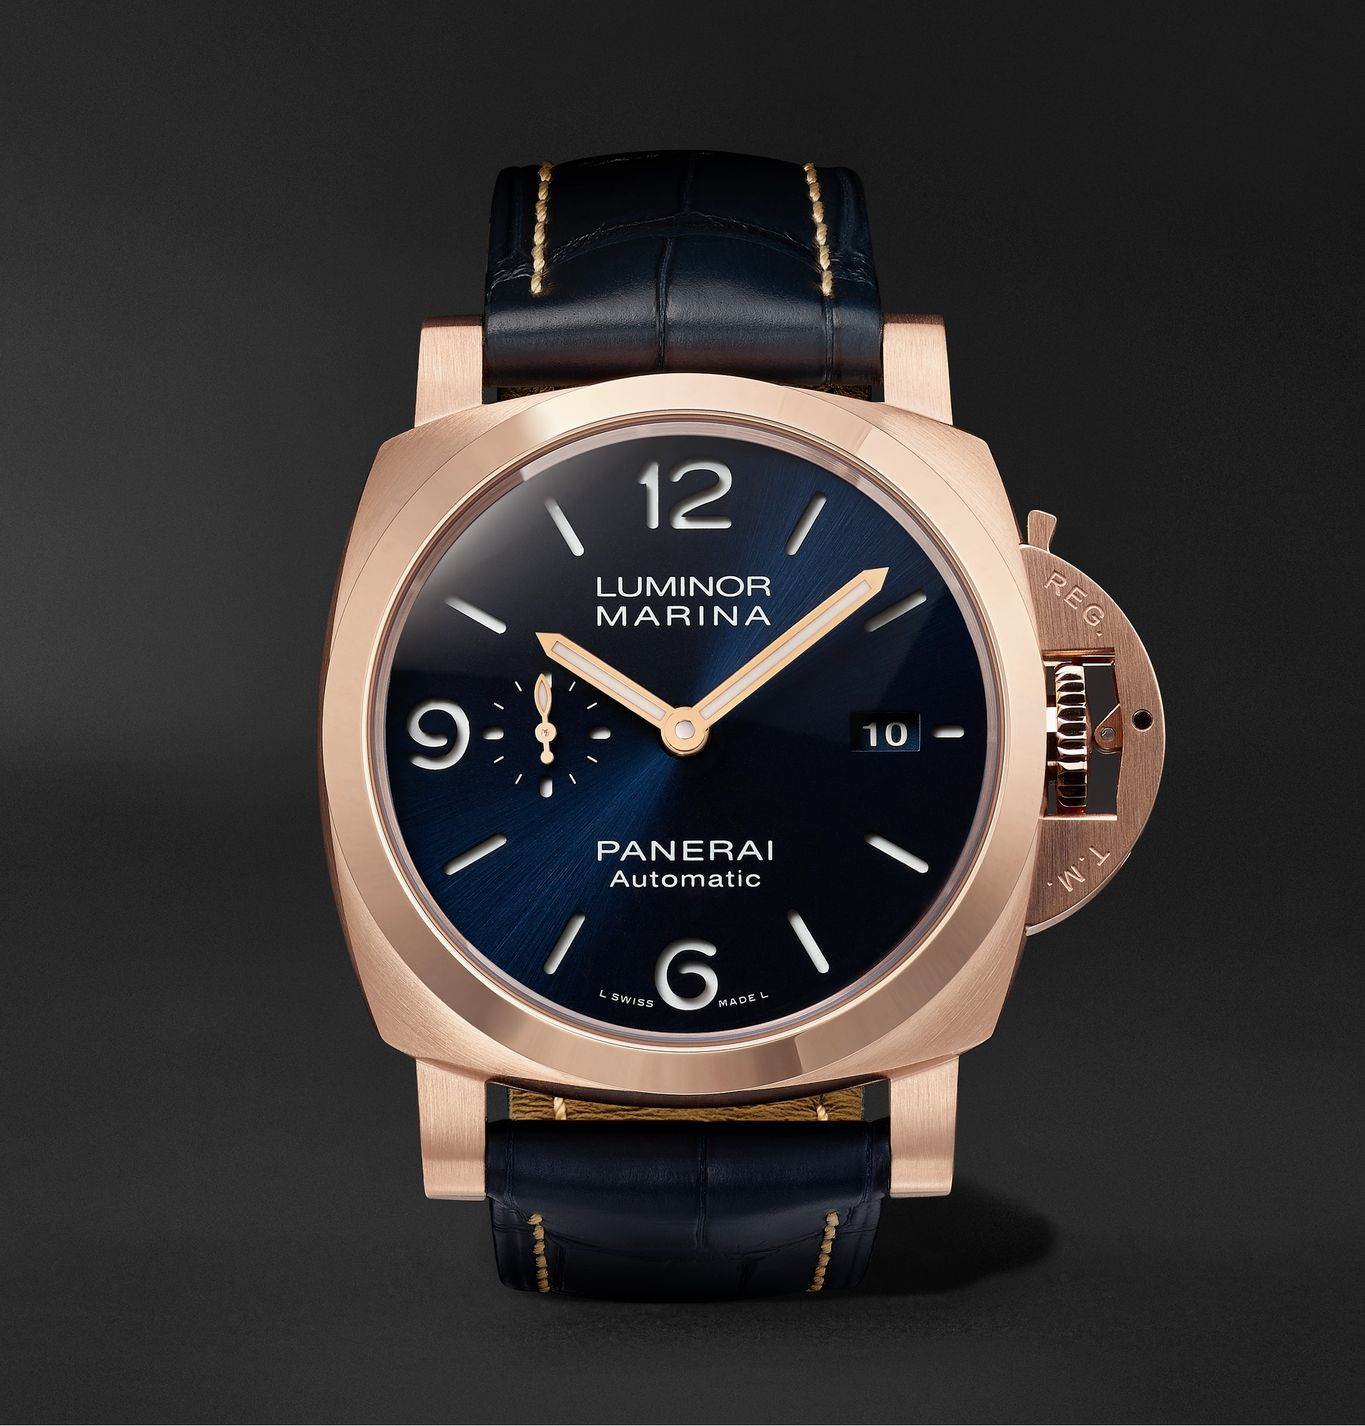 Luminor Marina Sole Blu Automatic 44mm Goldtech and Alligator Watch